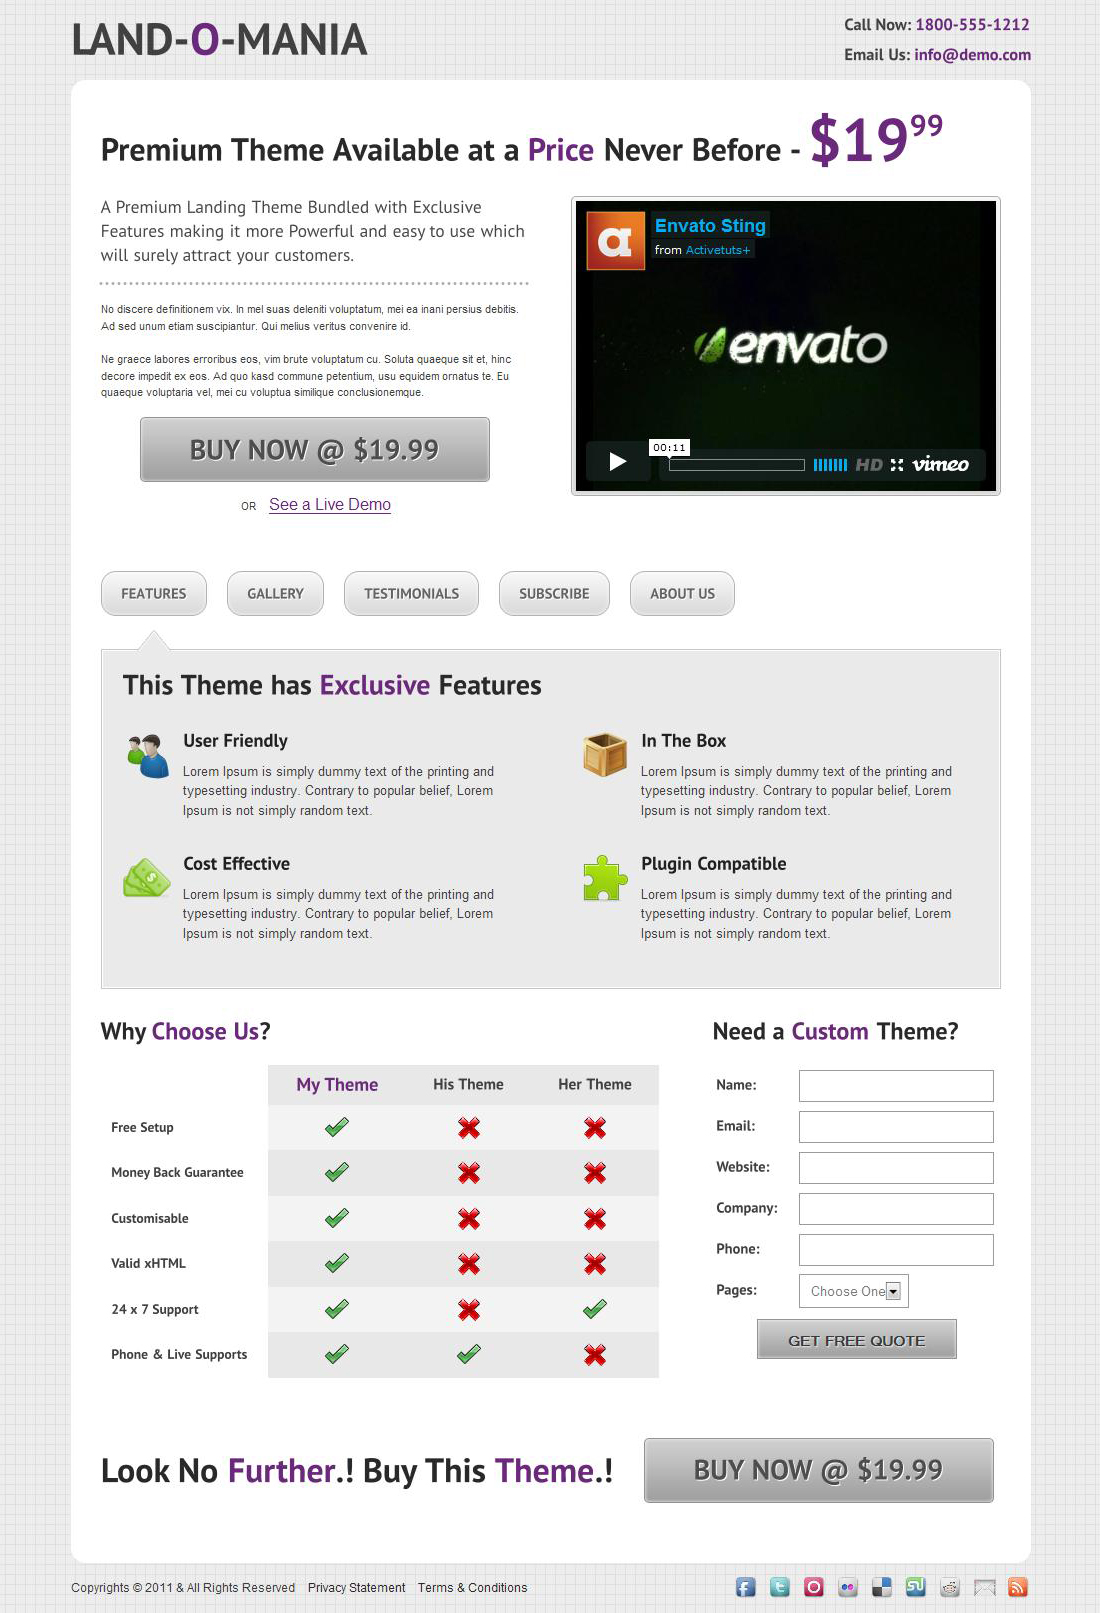 Land-o-Mania - A Complete Landing Page